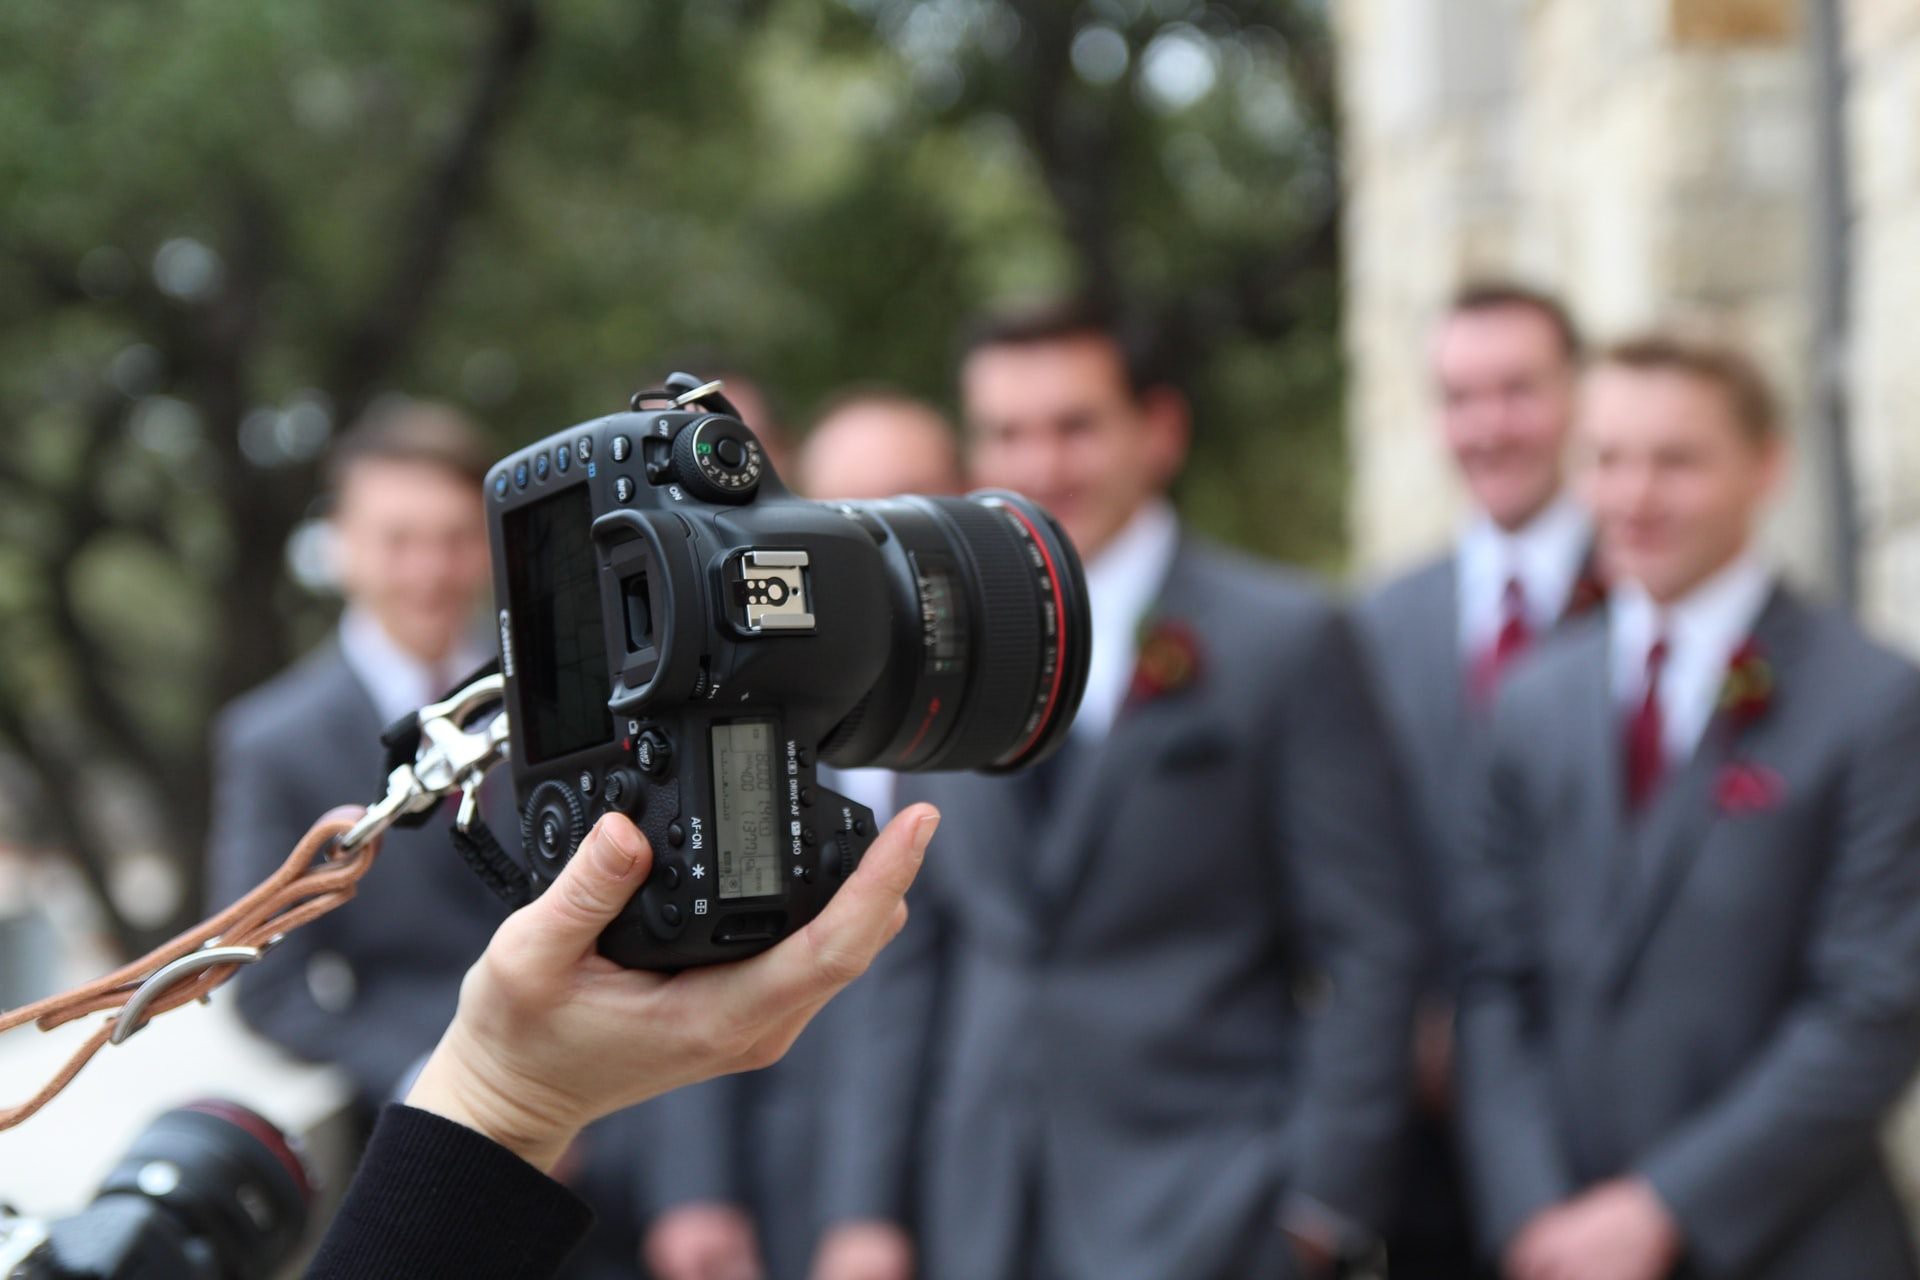 dslr camera in focus, camera in photographer's hand, wedding guests in background